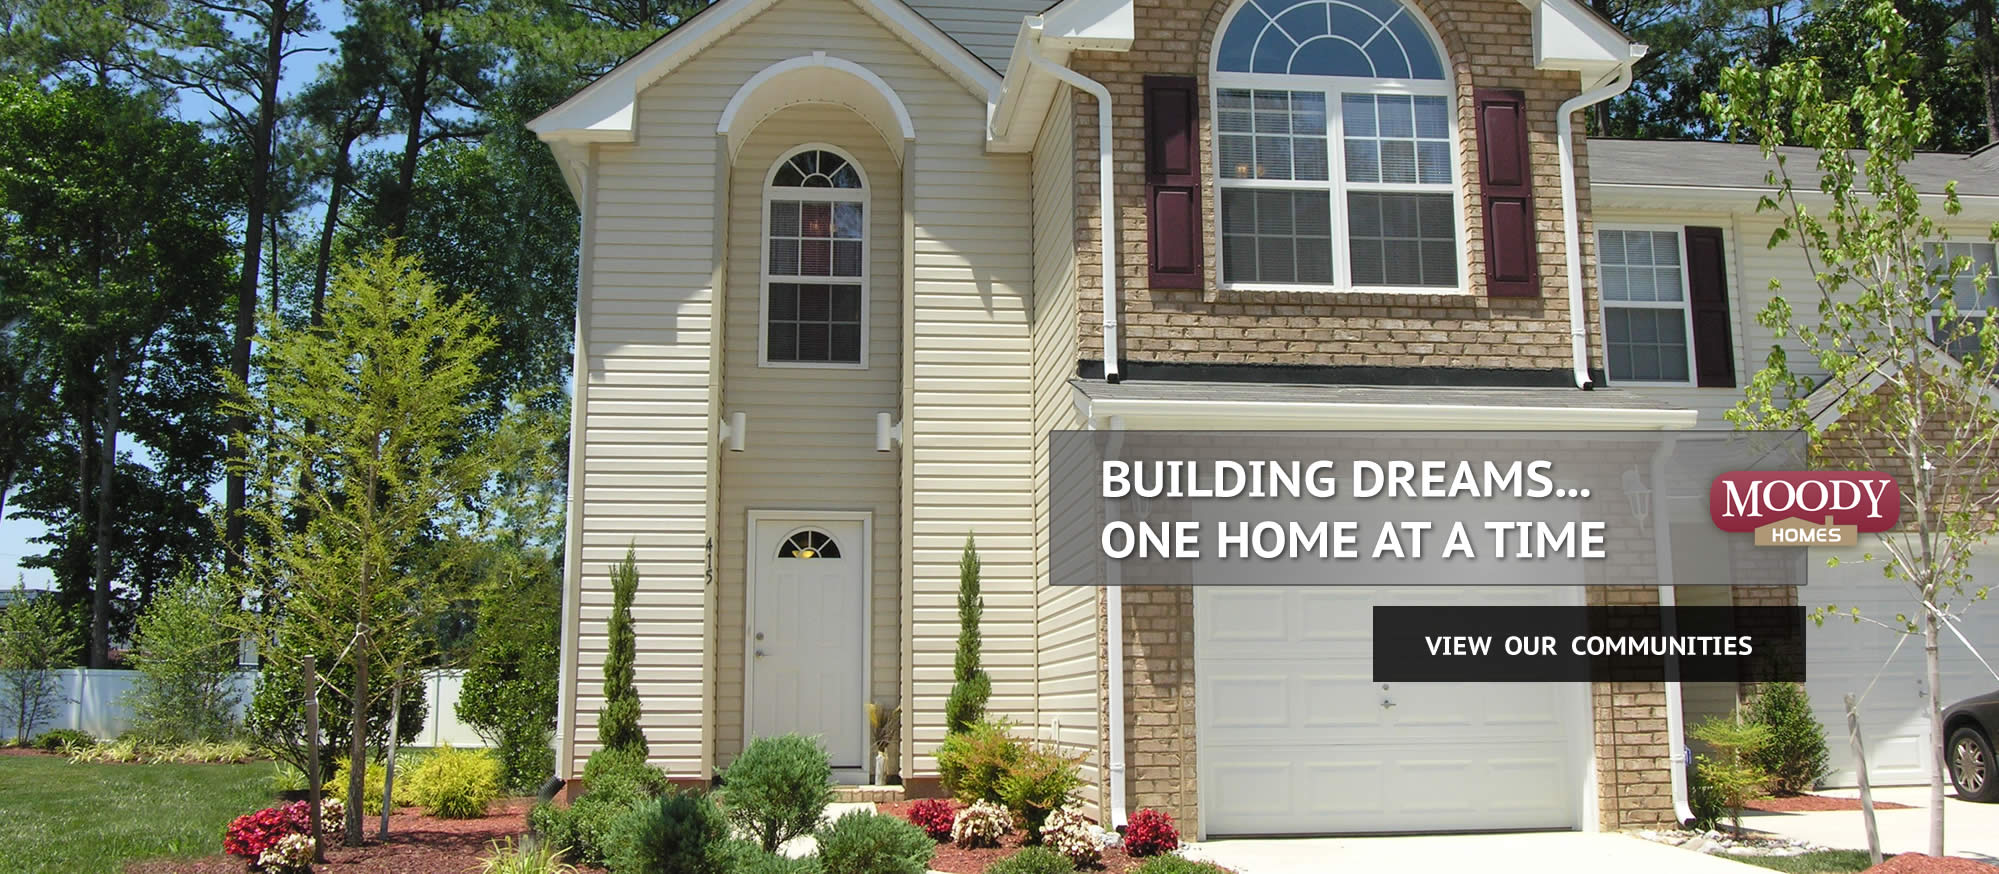 Townhomes and Condos in Colonial Crossing - Newport News VA - Near Fort Eustis - Joint Base Langley-Eustis